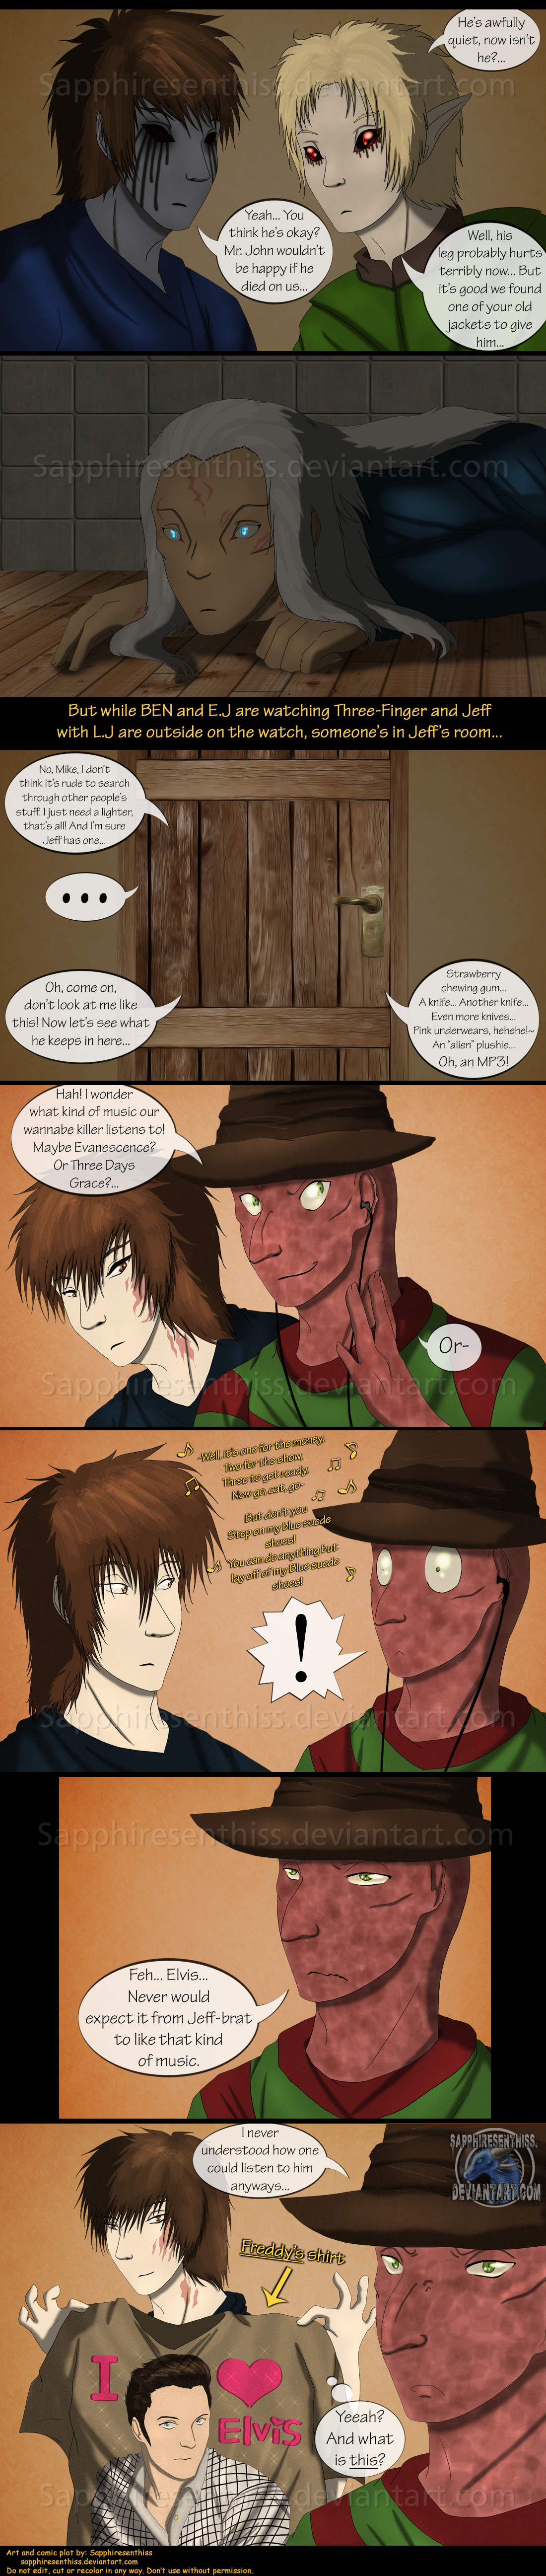 Adventures With Jeff The Killer - PAGE 199 by ...